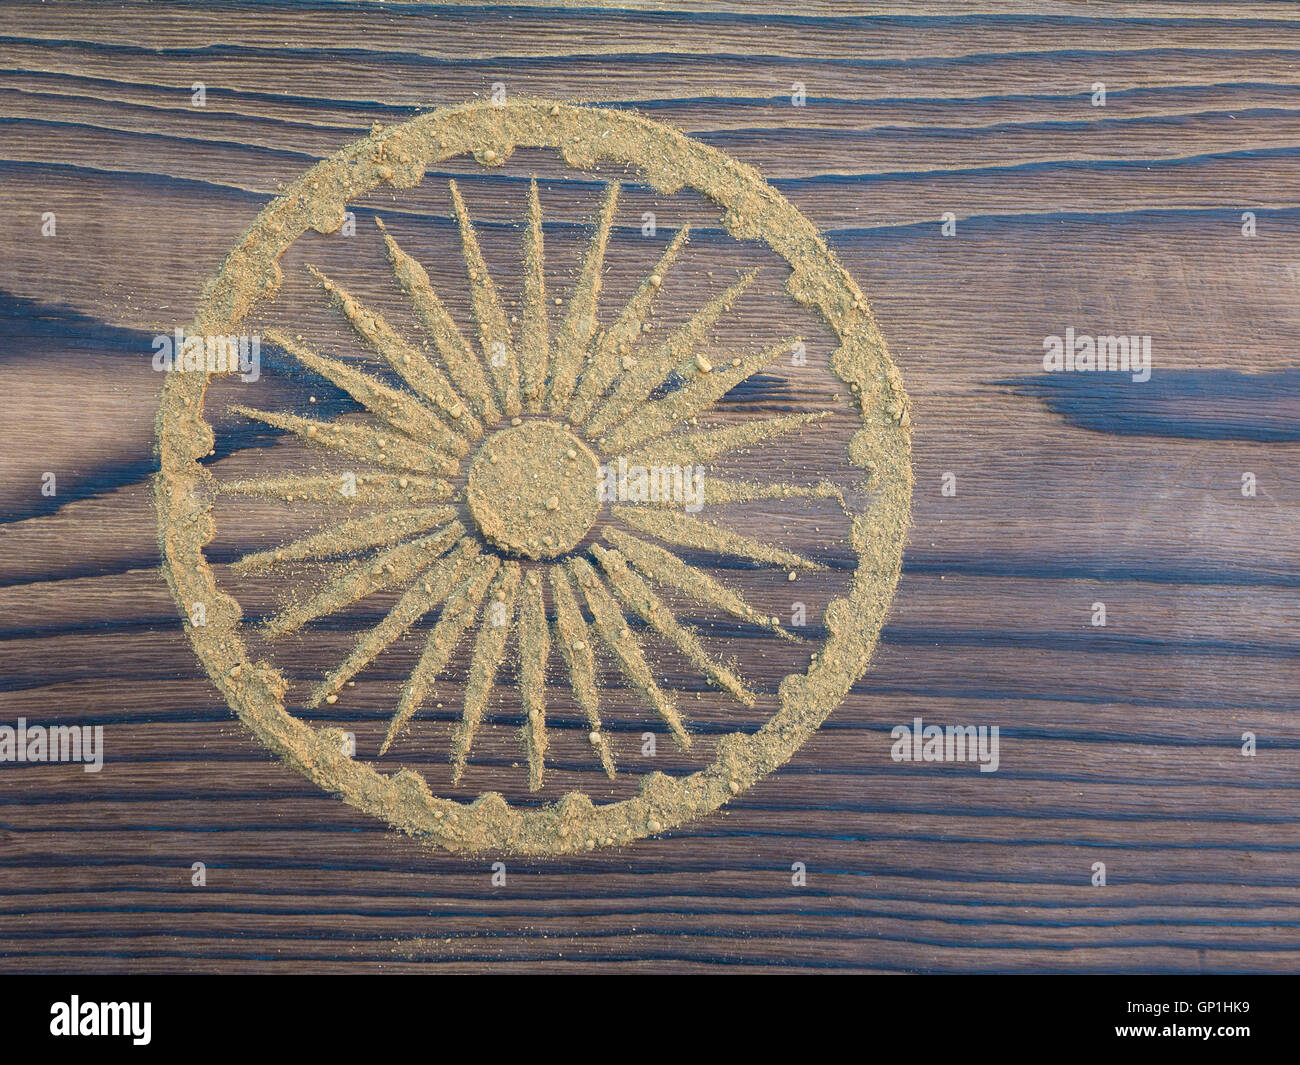 Indian henna powder in the form of Ashoka Chakra on the textured wooden board - Stock Image